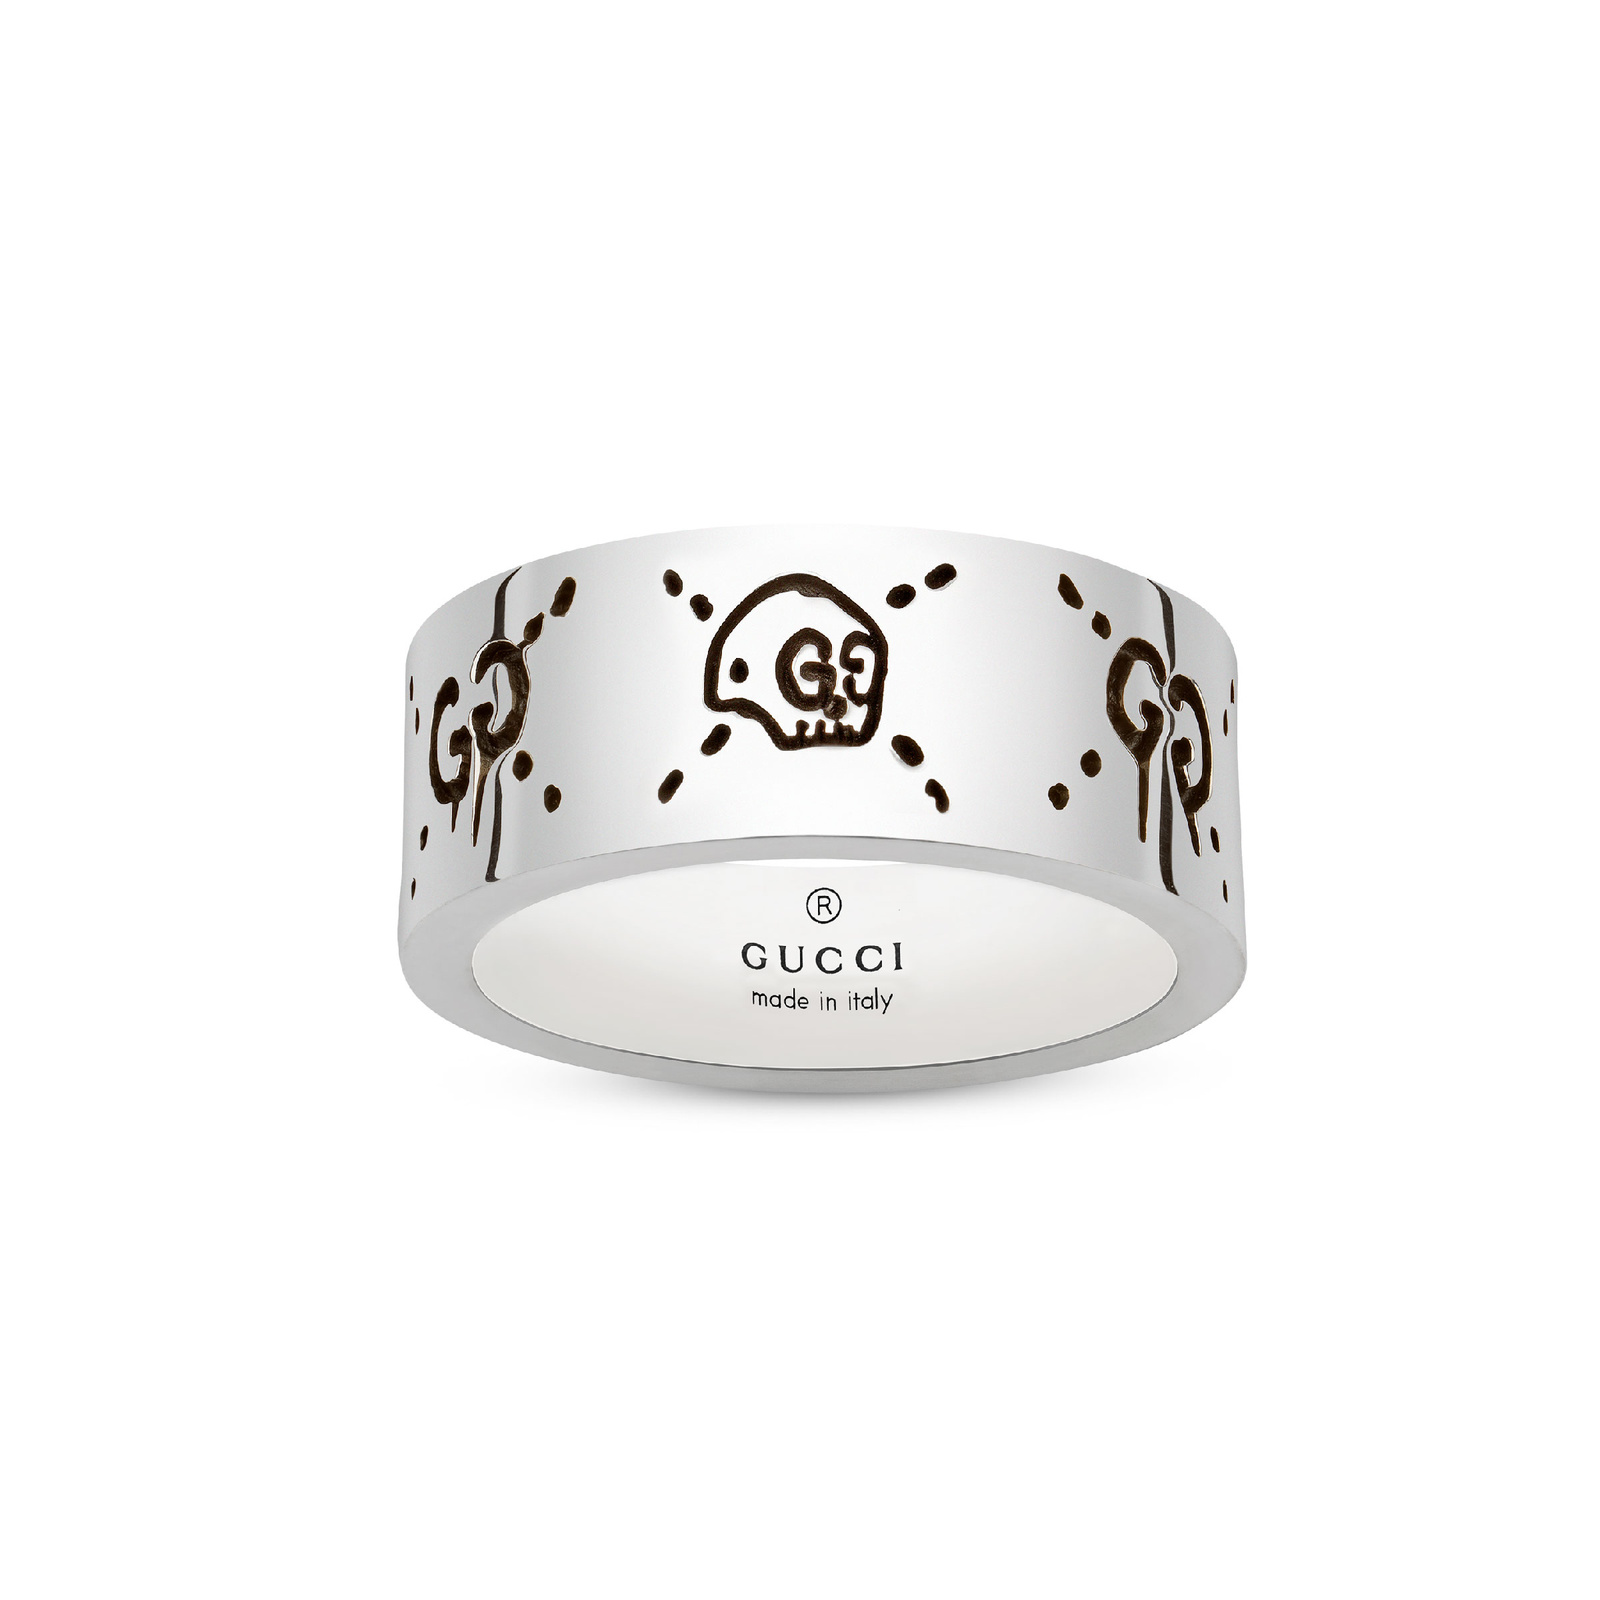 GucciGhost 9mm Ring in Silver - Ring Size N